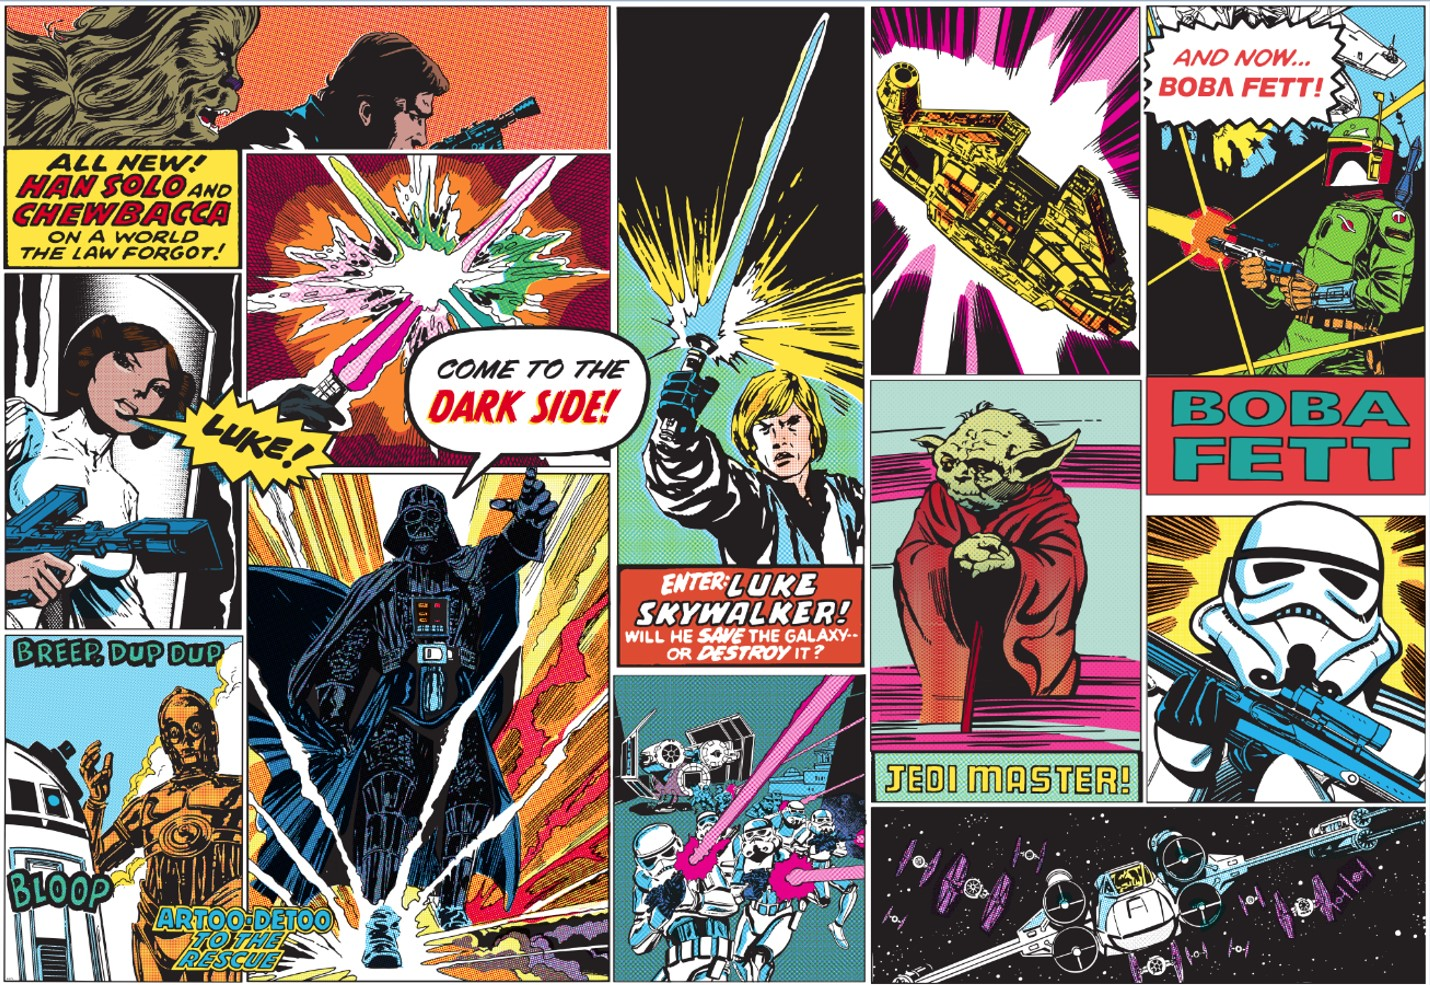 Star Wars Mural Wallpaper Star Wars Comic Mural Usa 1430x985 Wallpaper Teahub Io